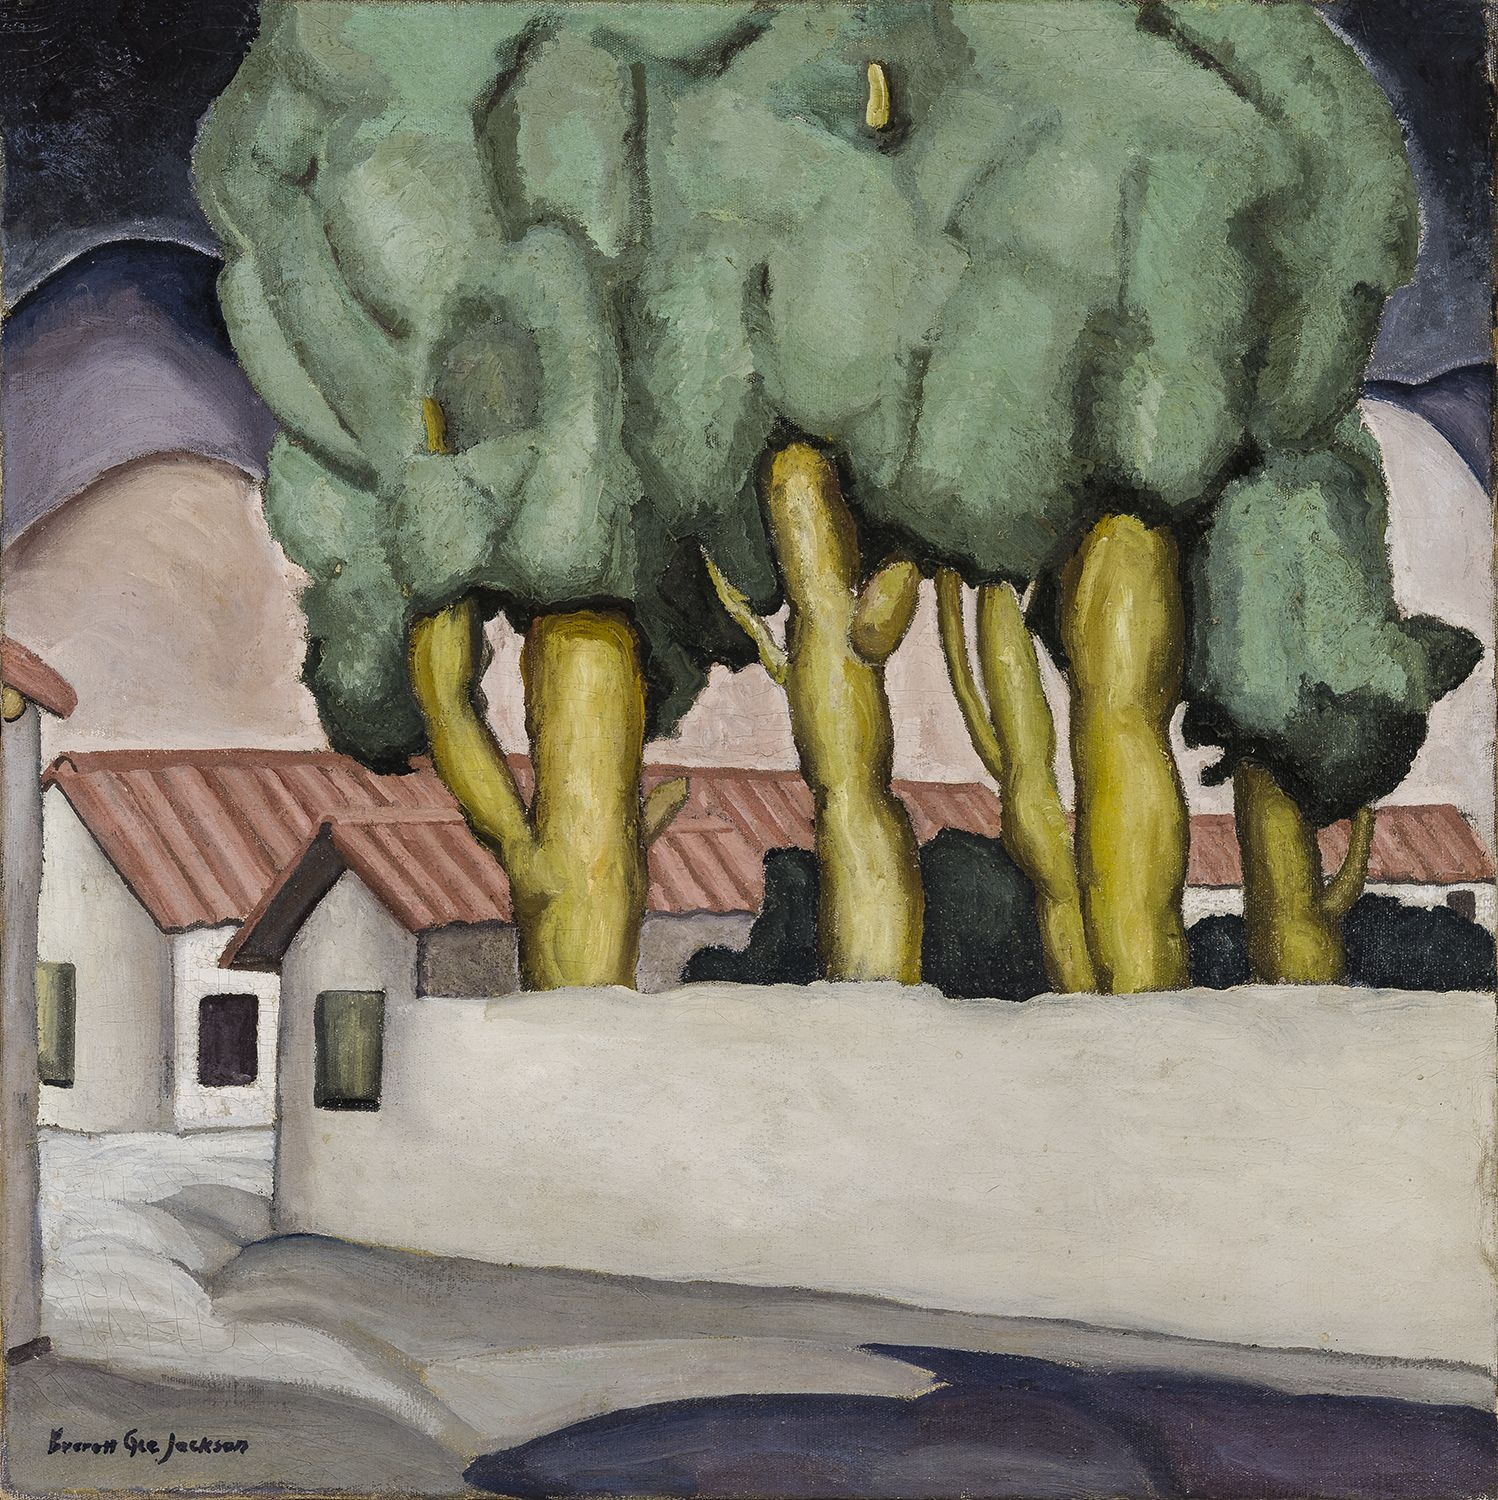 Street in Ajijic, 1926, Oil on canvas, 24 x 24 in.